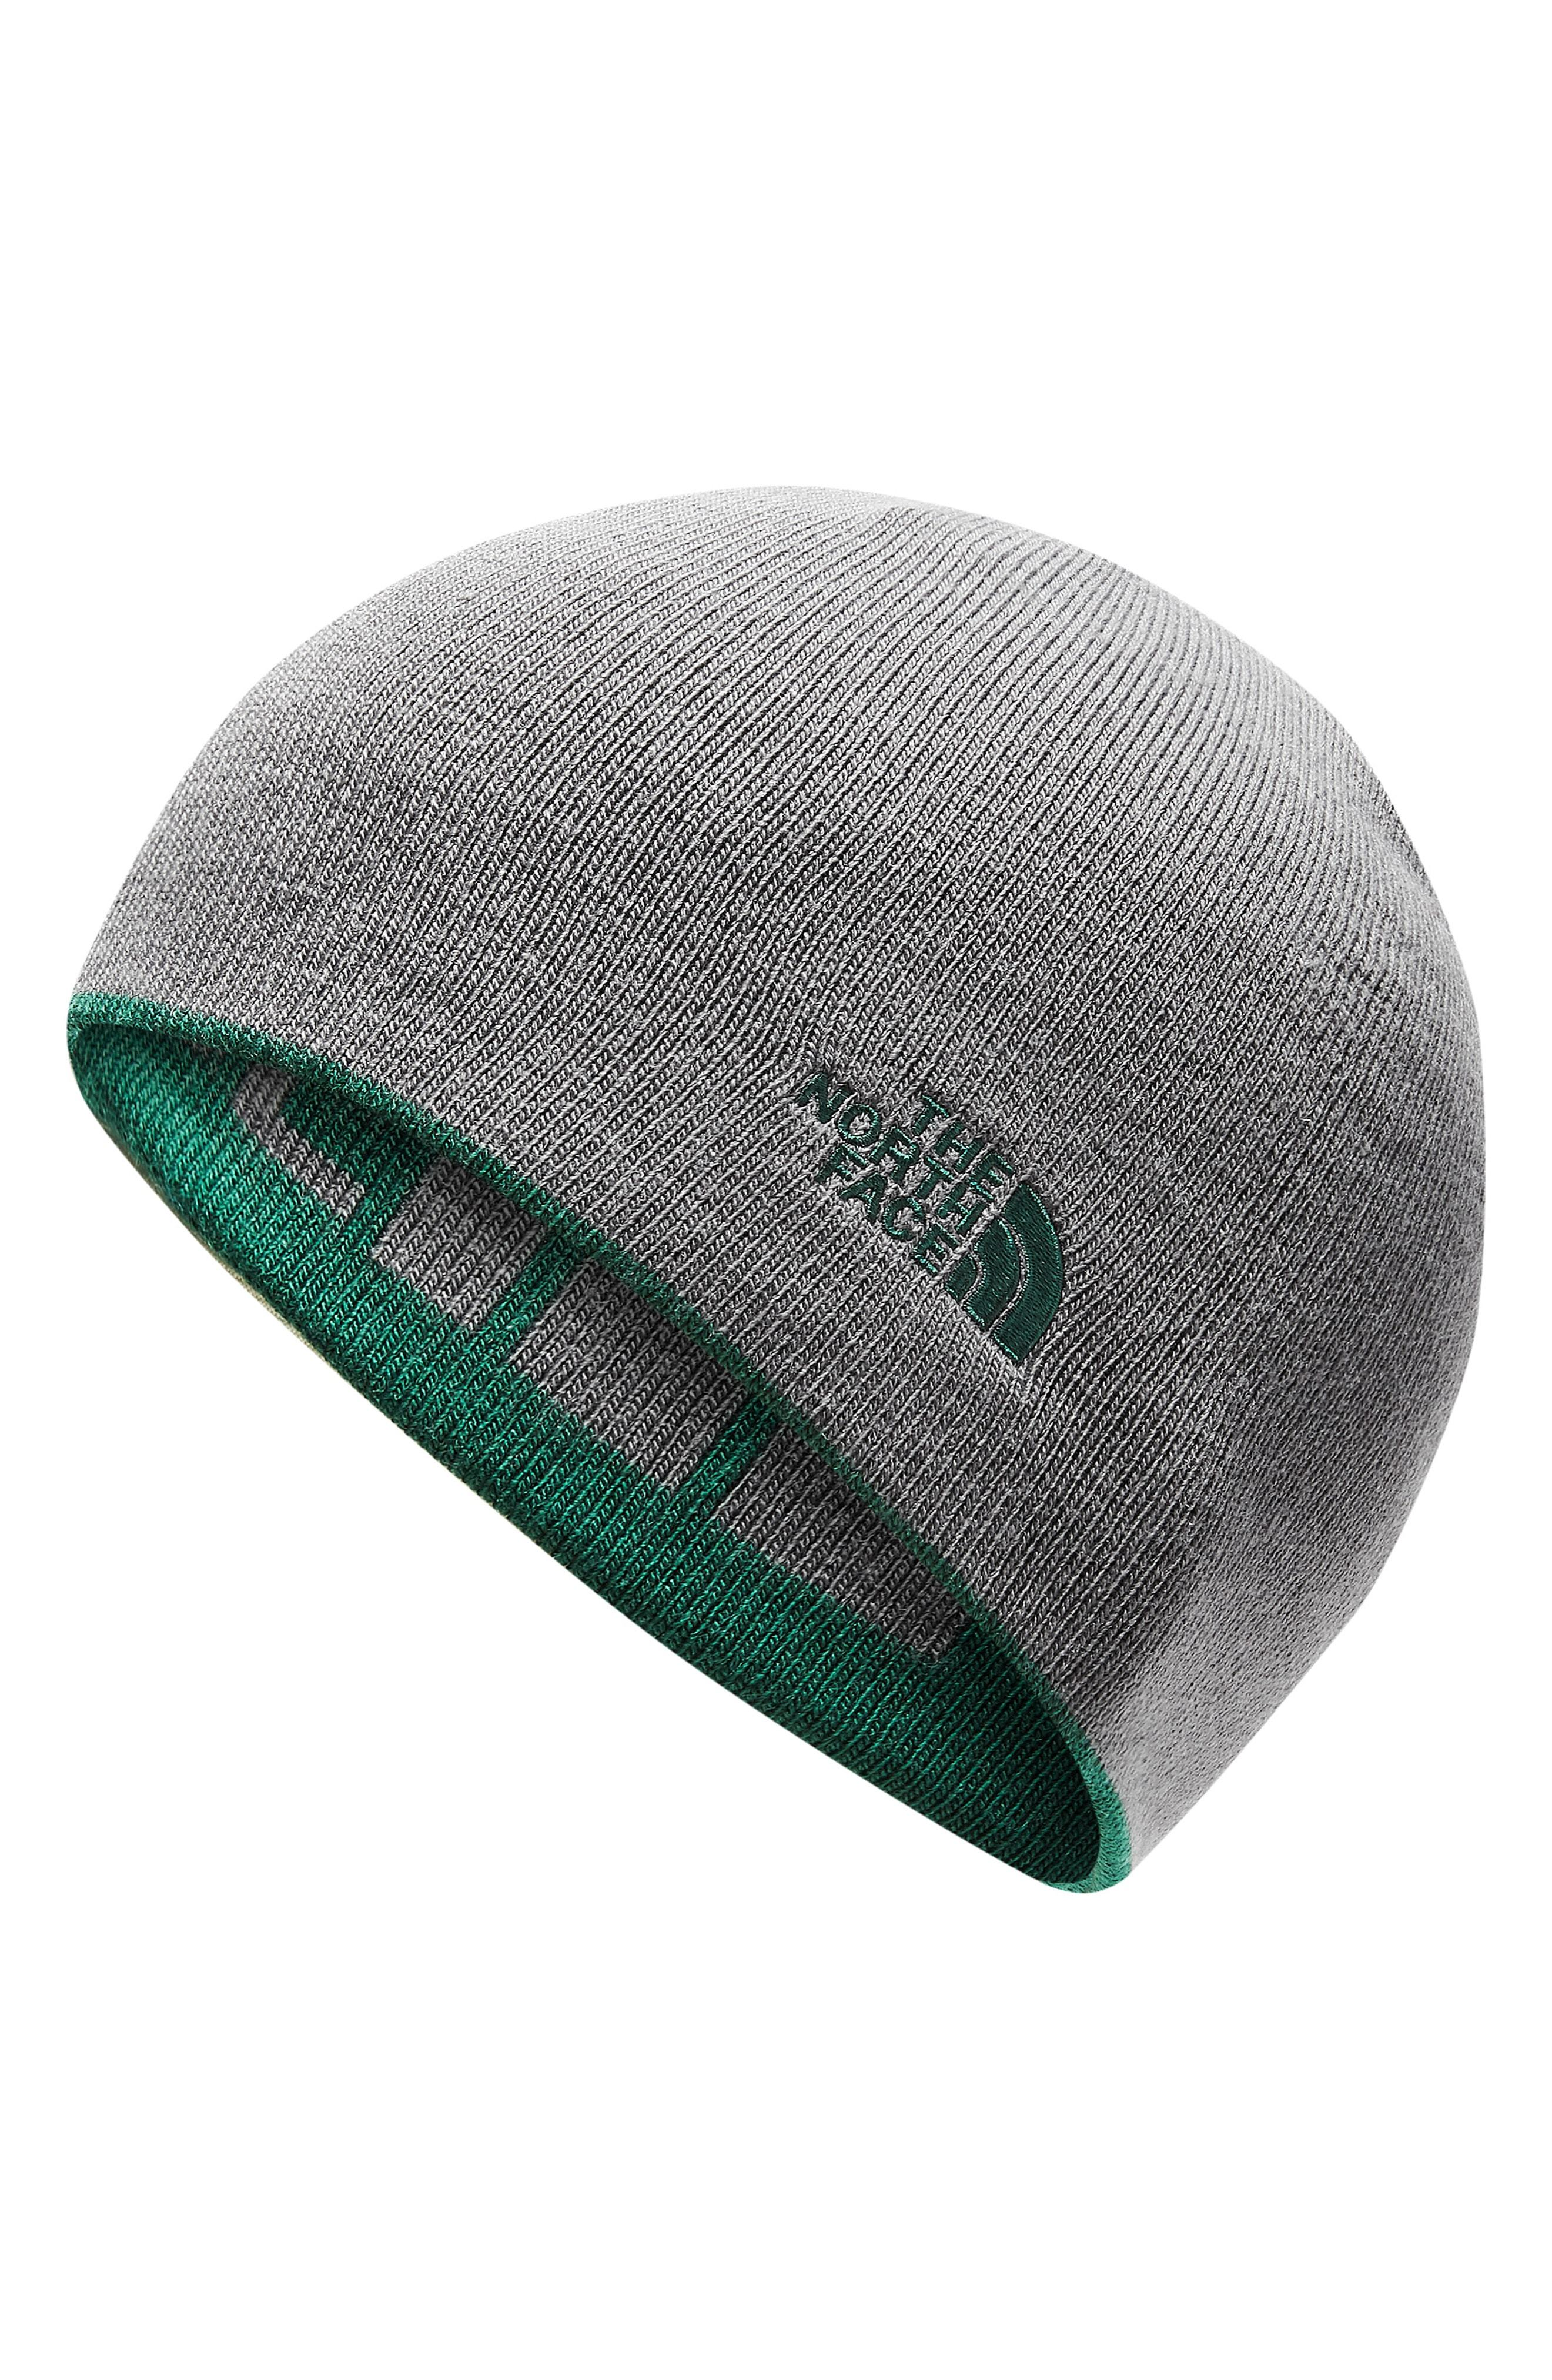 356099306cb ... The North Face Reversible Beanie